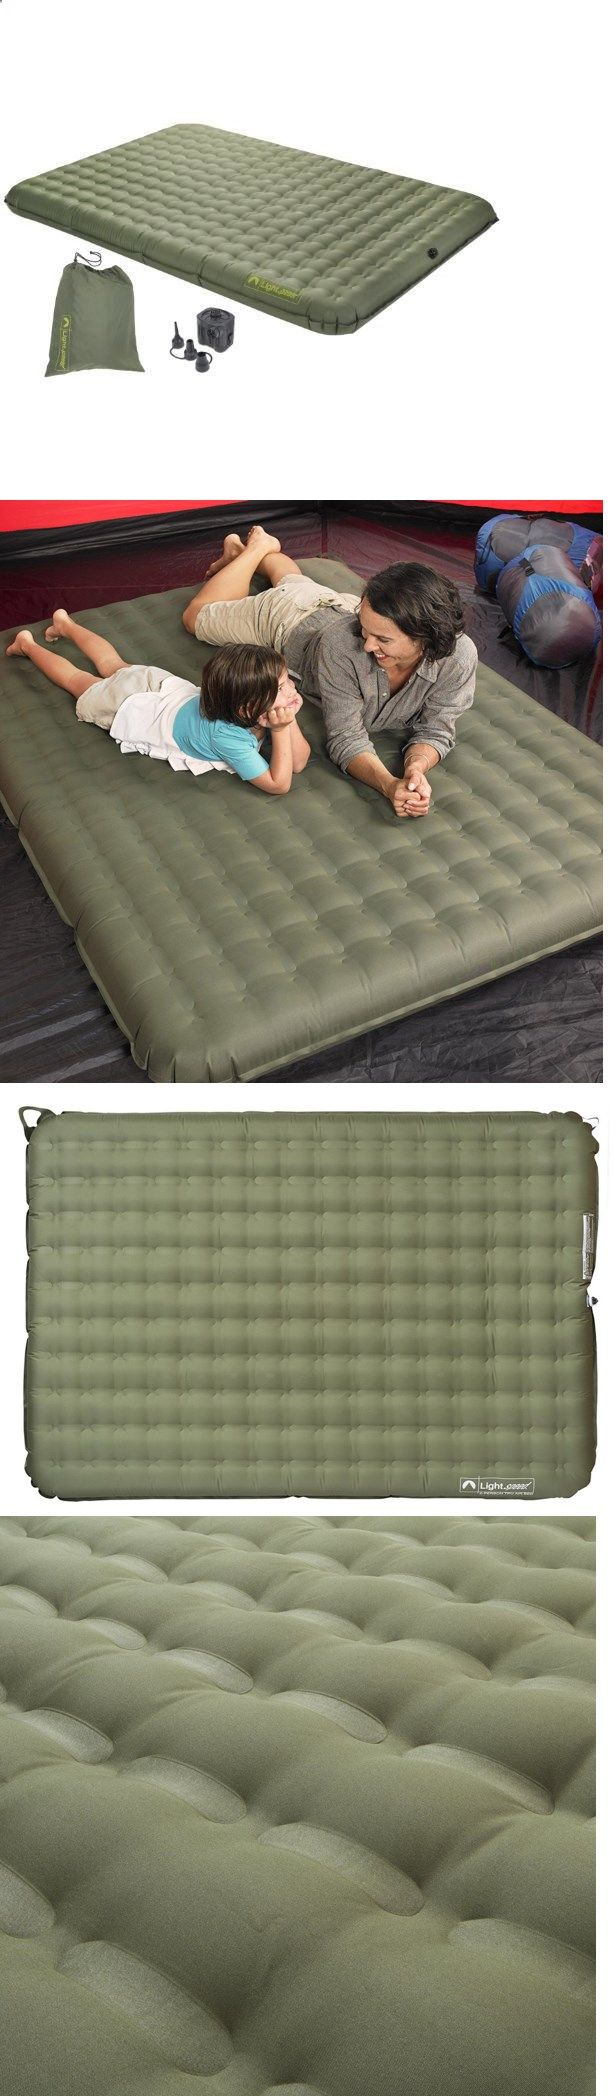 Camping Sleeping Pad - Mattresses and Pads 36114: Backpacking Sleeping Pad 2 Person Outdoor Camping Air Bed Mat Inflating Mattress -> BUY IT NOW ONLY: $98.72 on eBay!